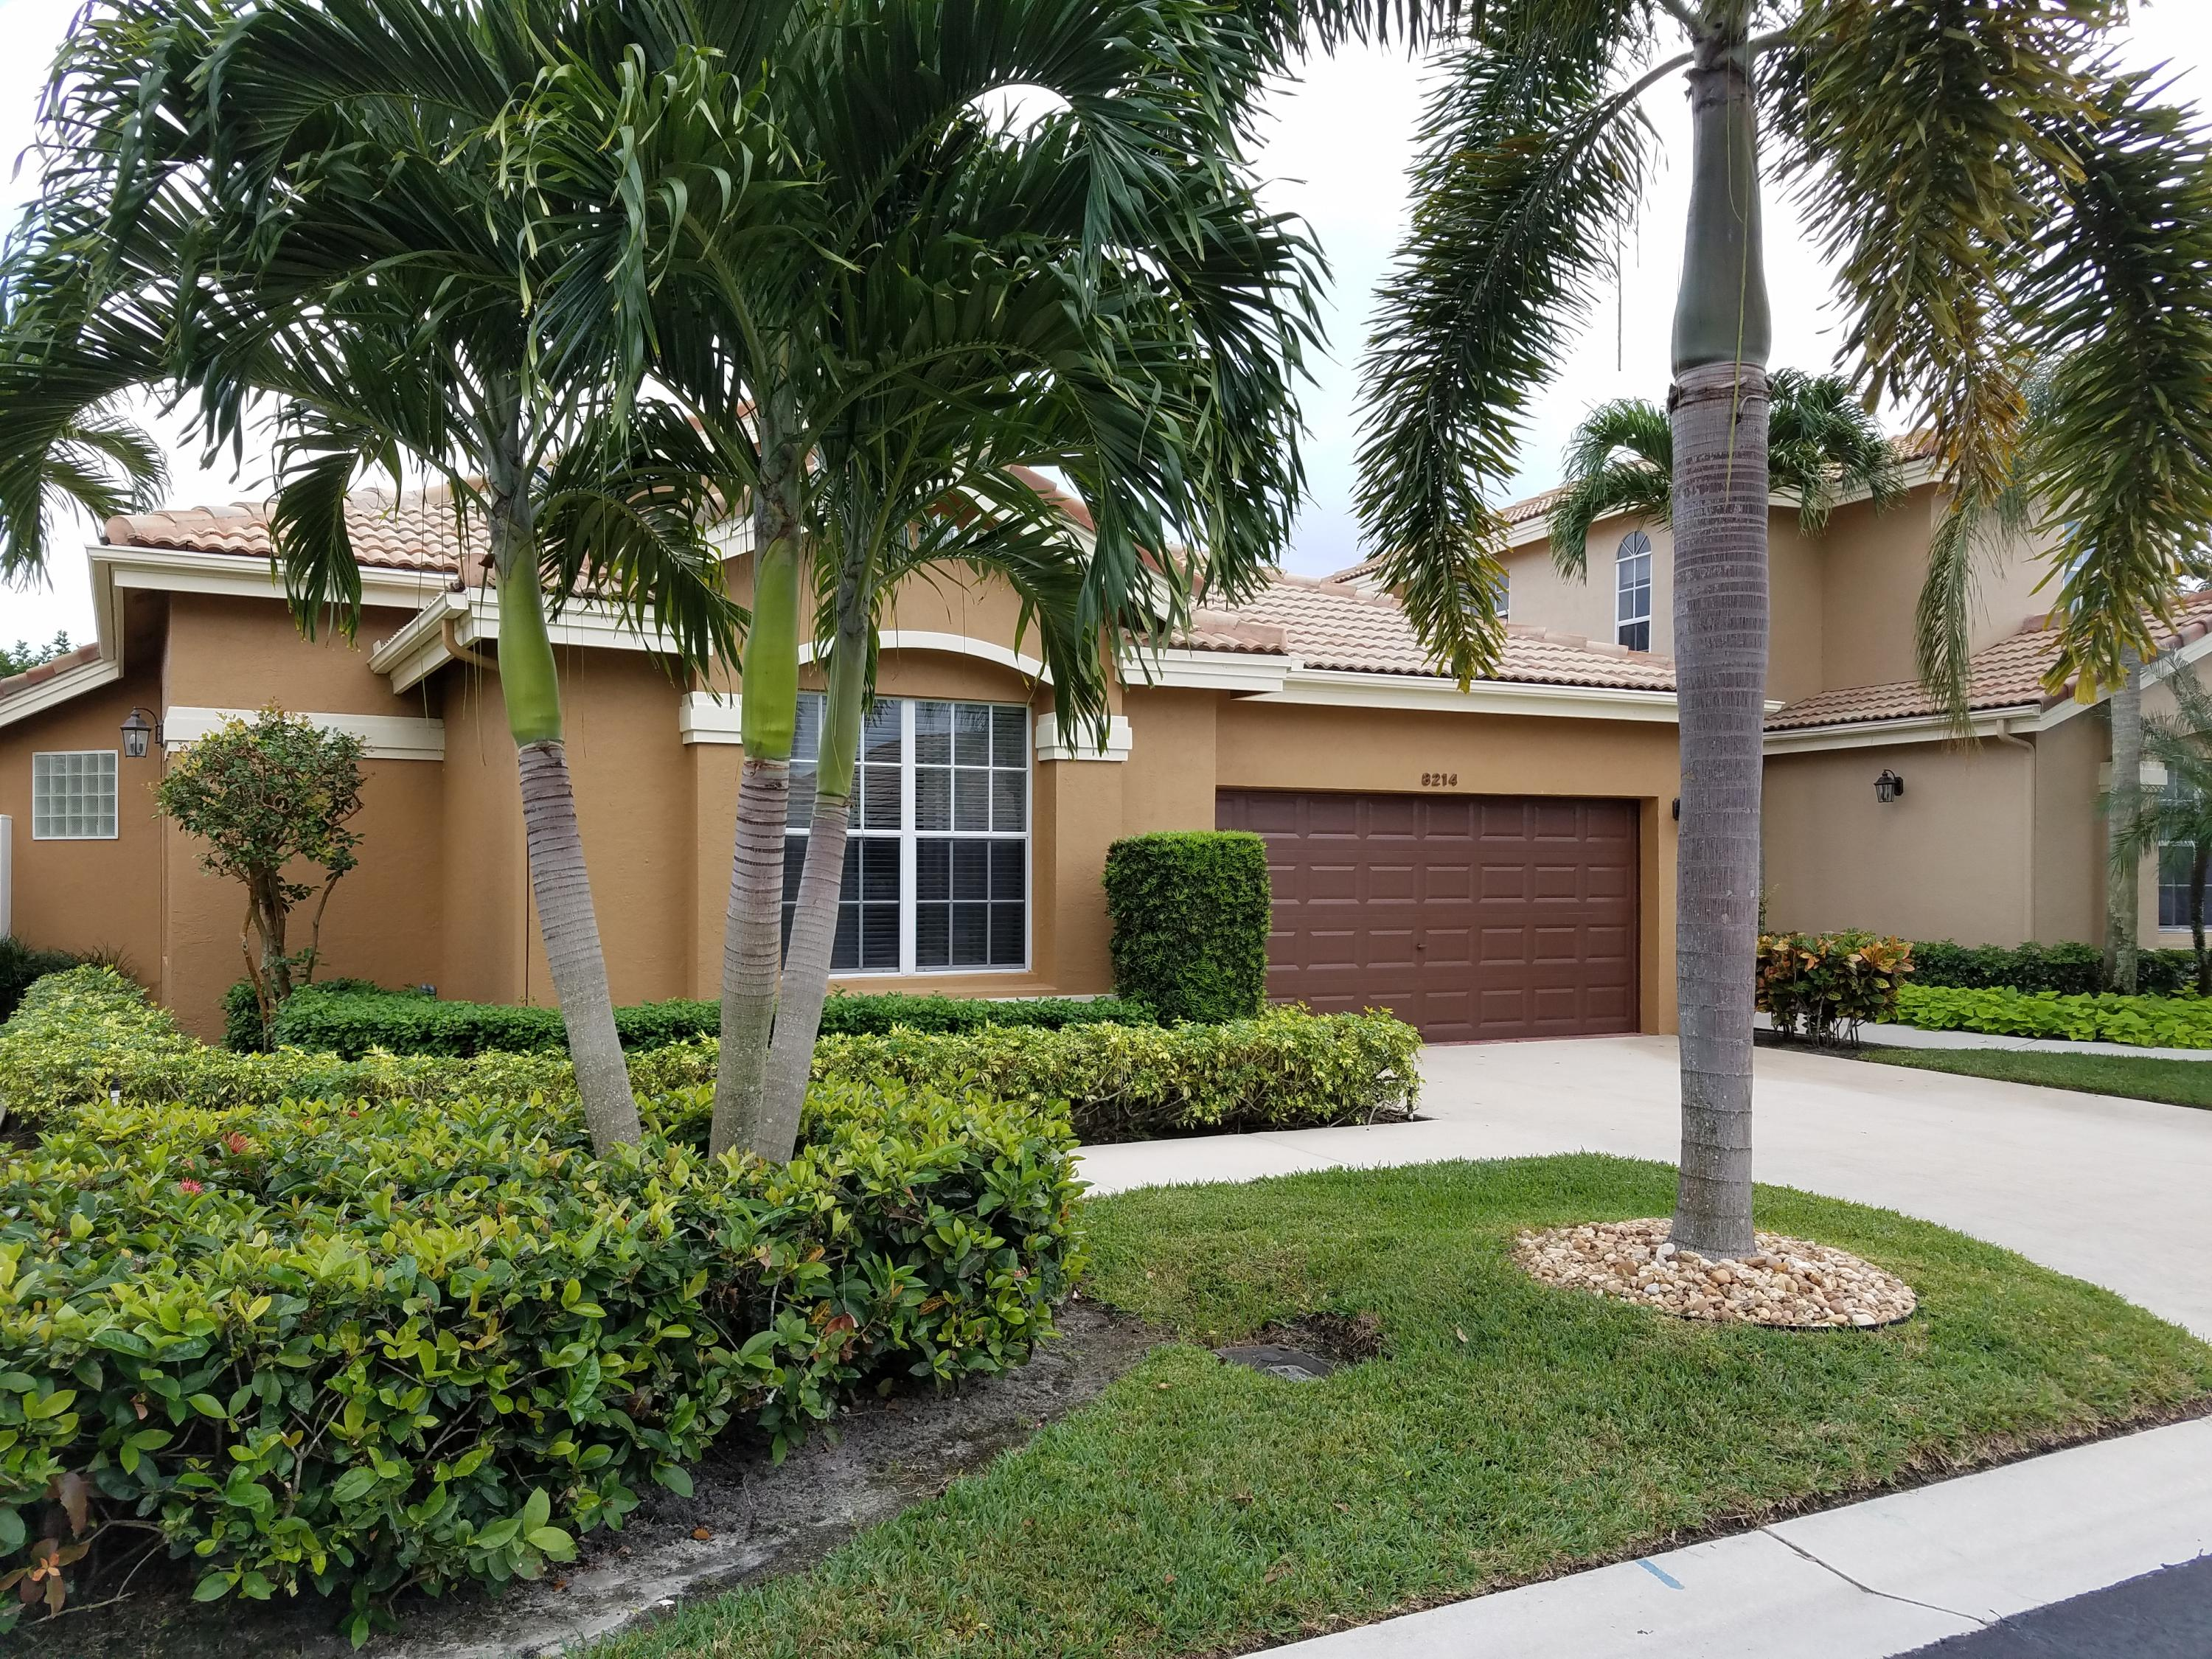 West Palm Beach, Florida 33412, 3 Bedrooms Bedrooms, ,2 BathroomsBathrooms,A,Single family,RX-10597632